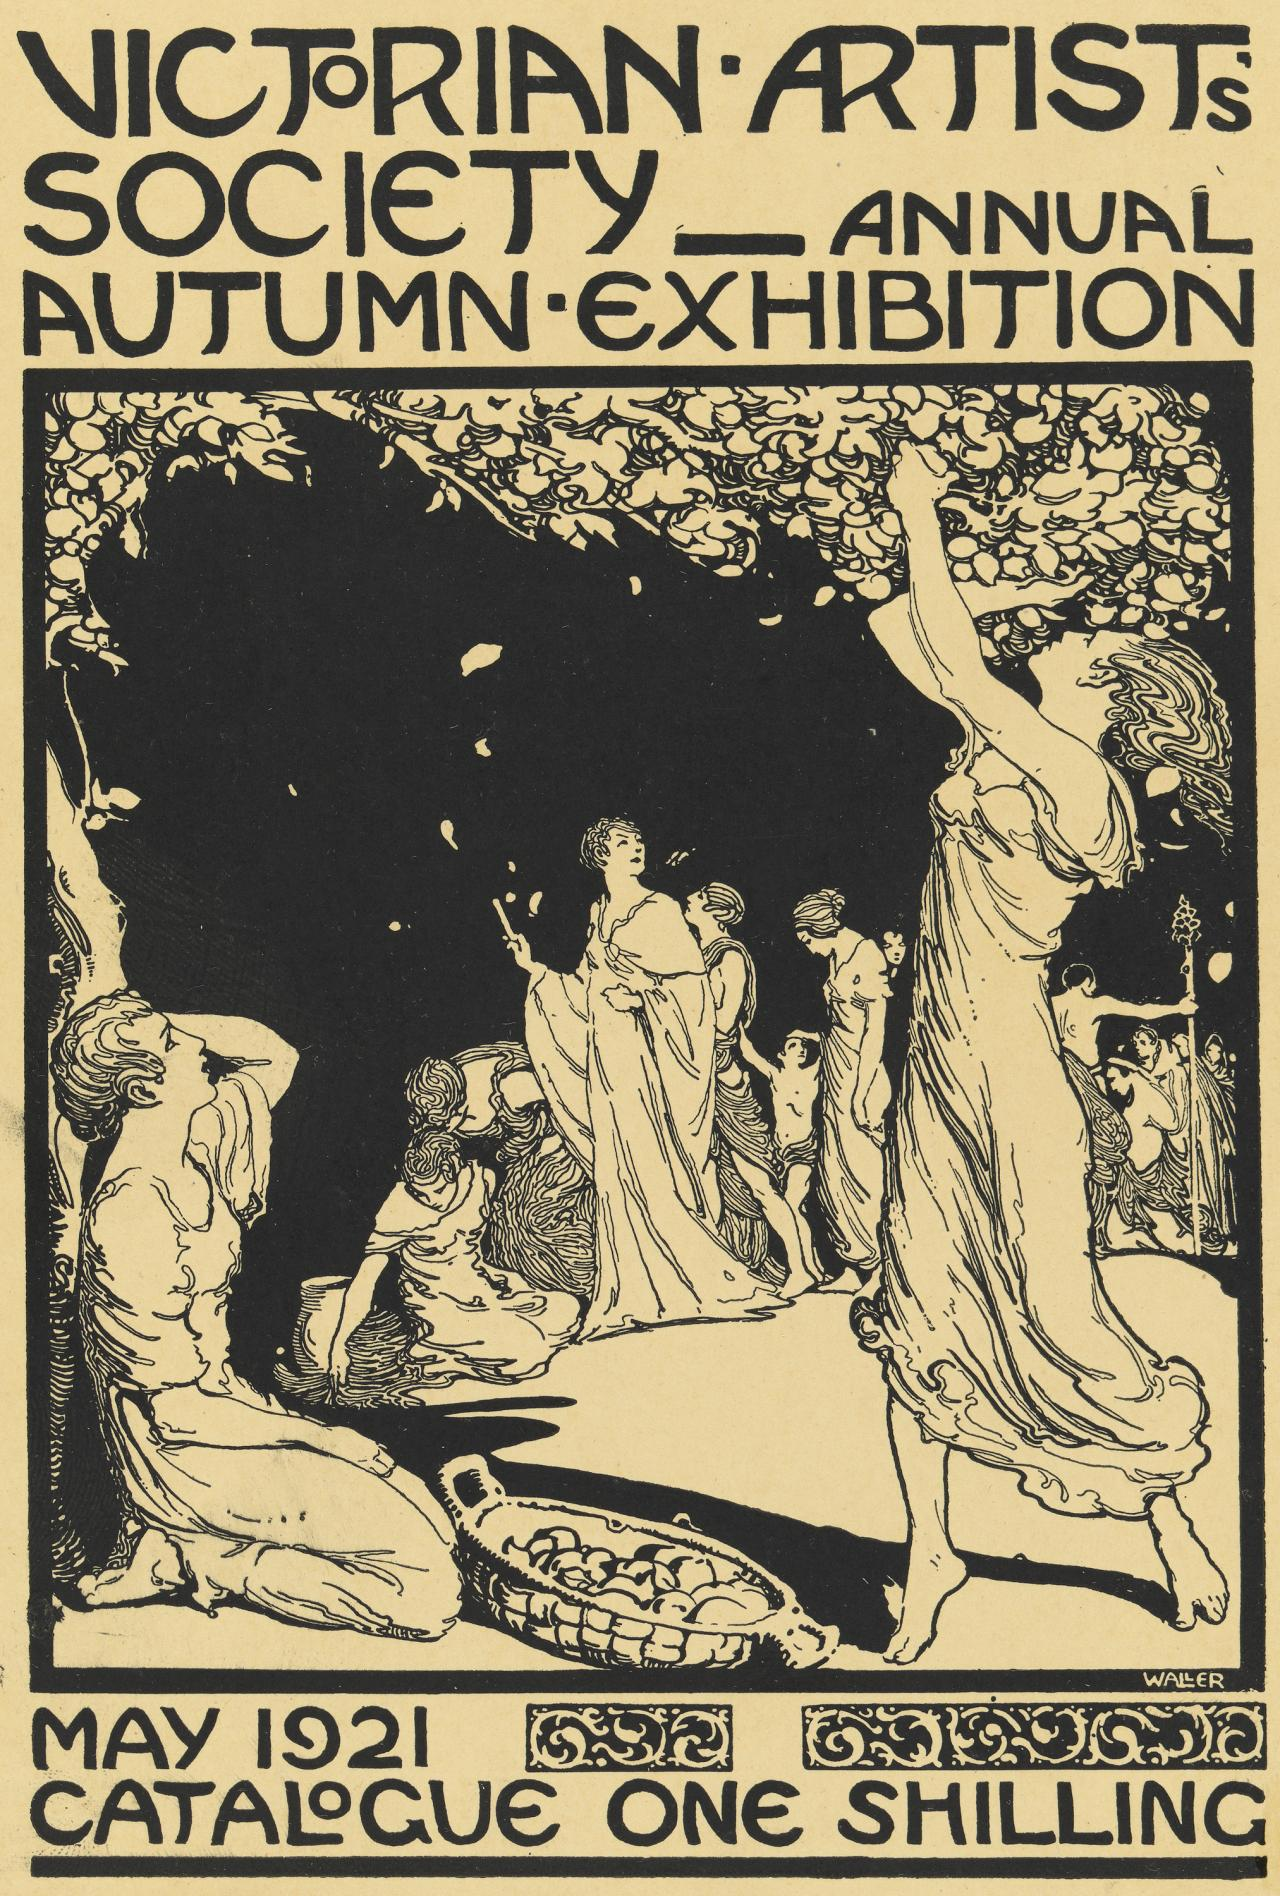 Victorian Artists' Society Annual Autumn Exhibition (catalogue cover)